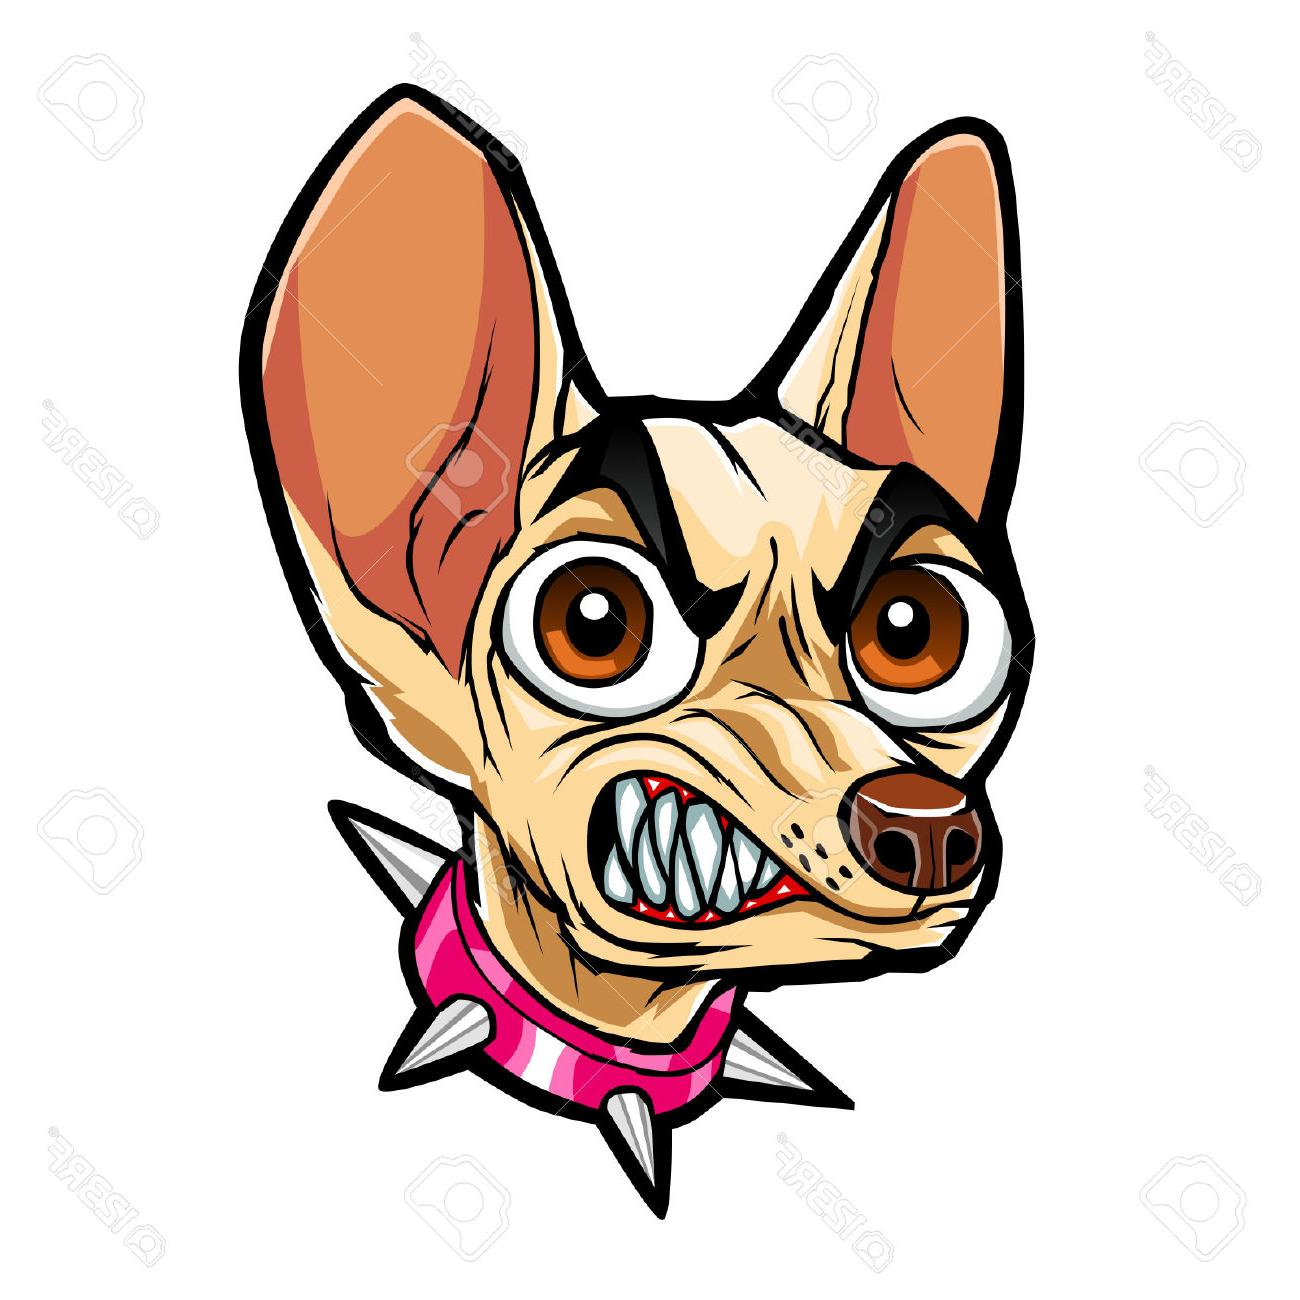 1300x1300 Hd Taco Bell Chihuahua Clip Art Photos Vector Graphic Images